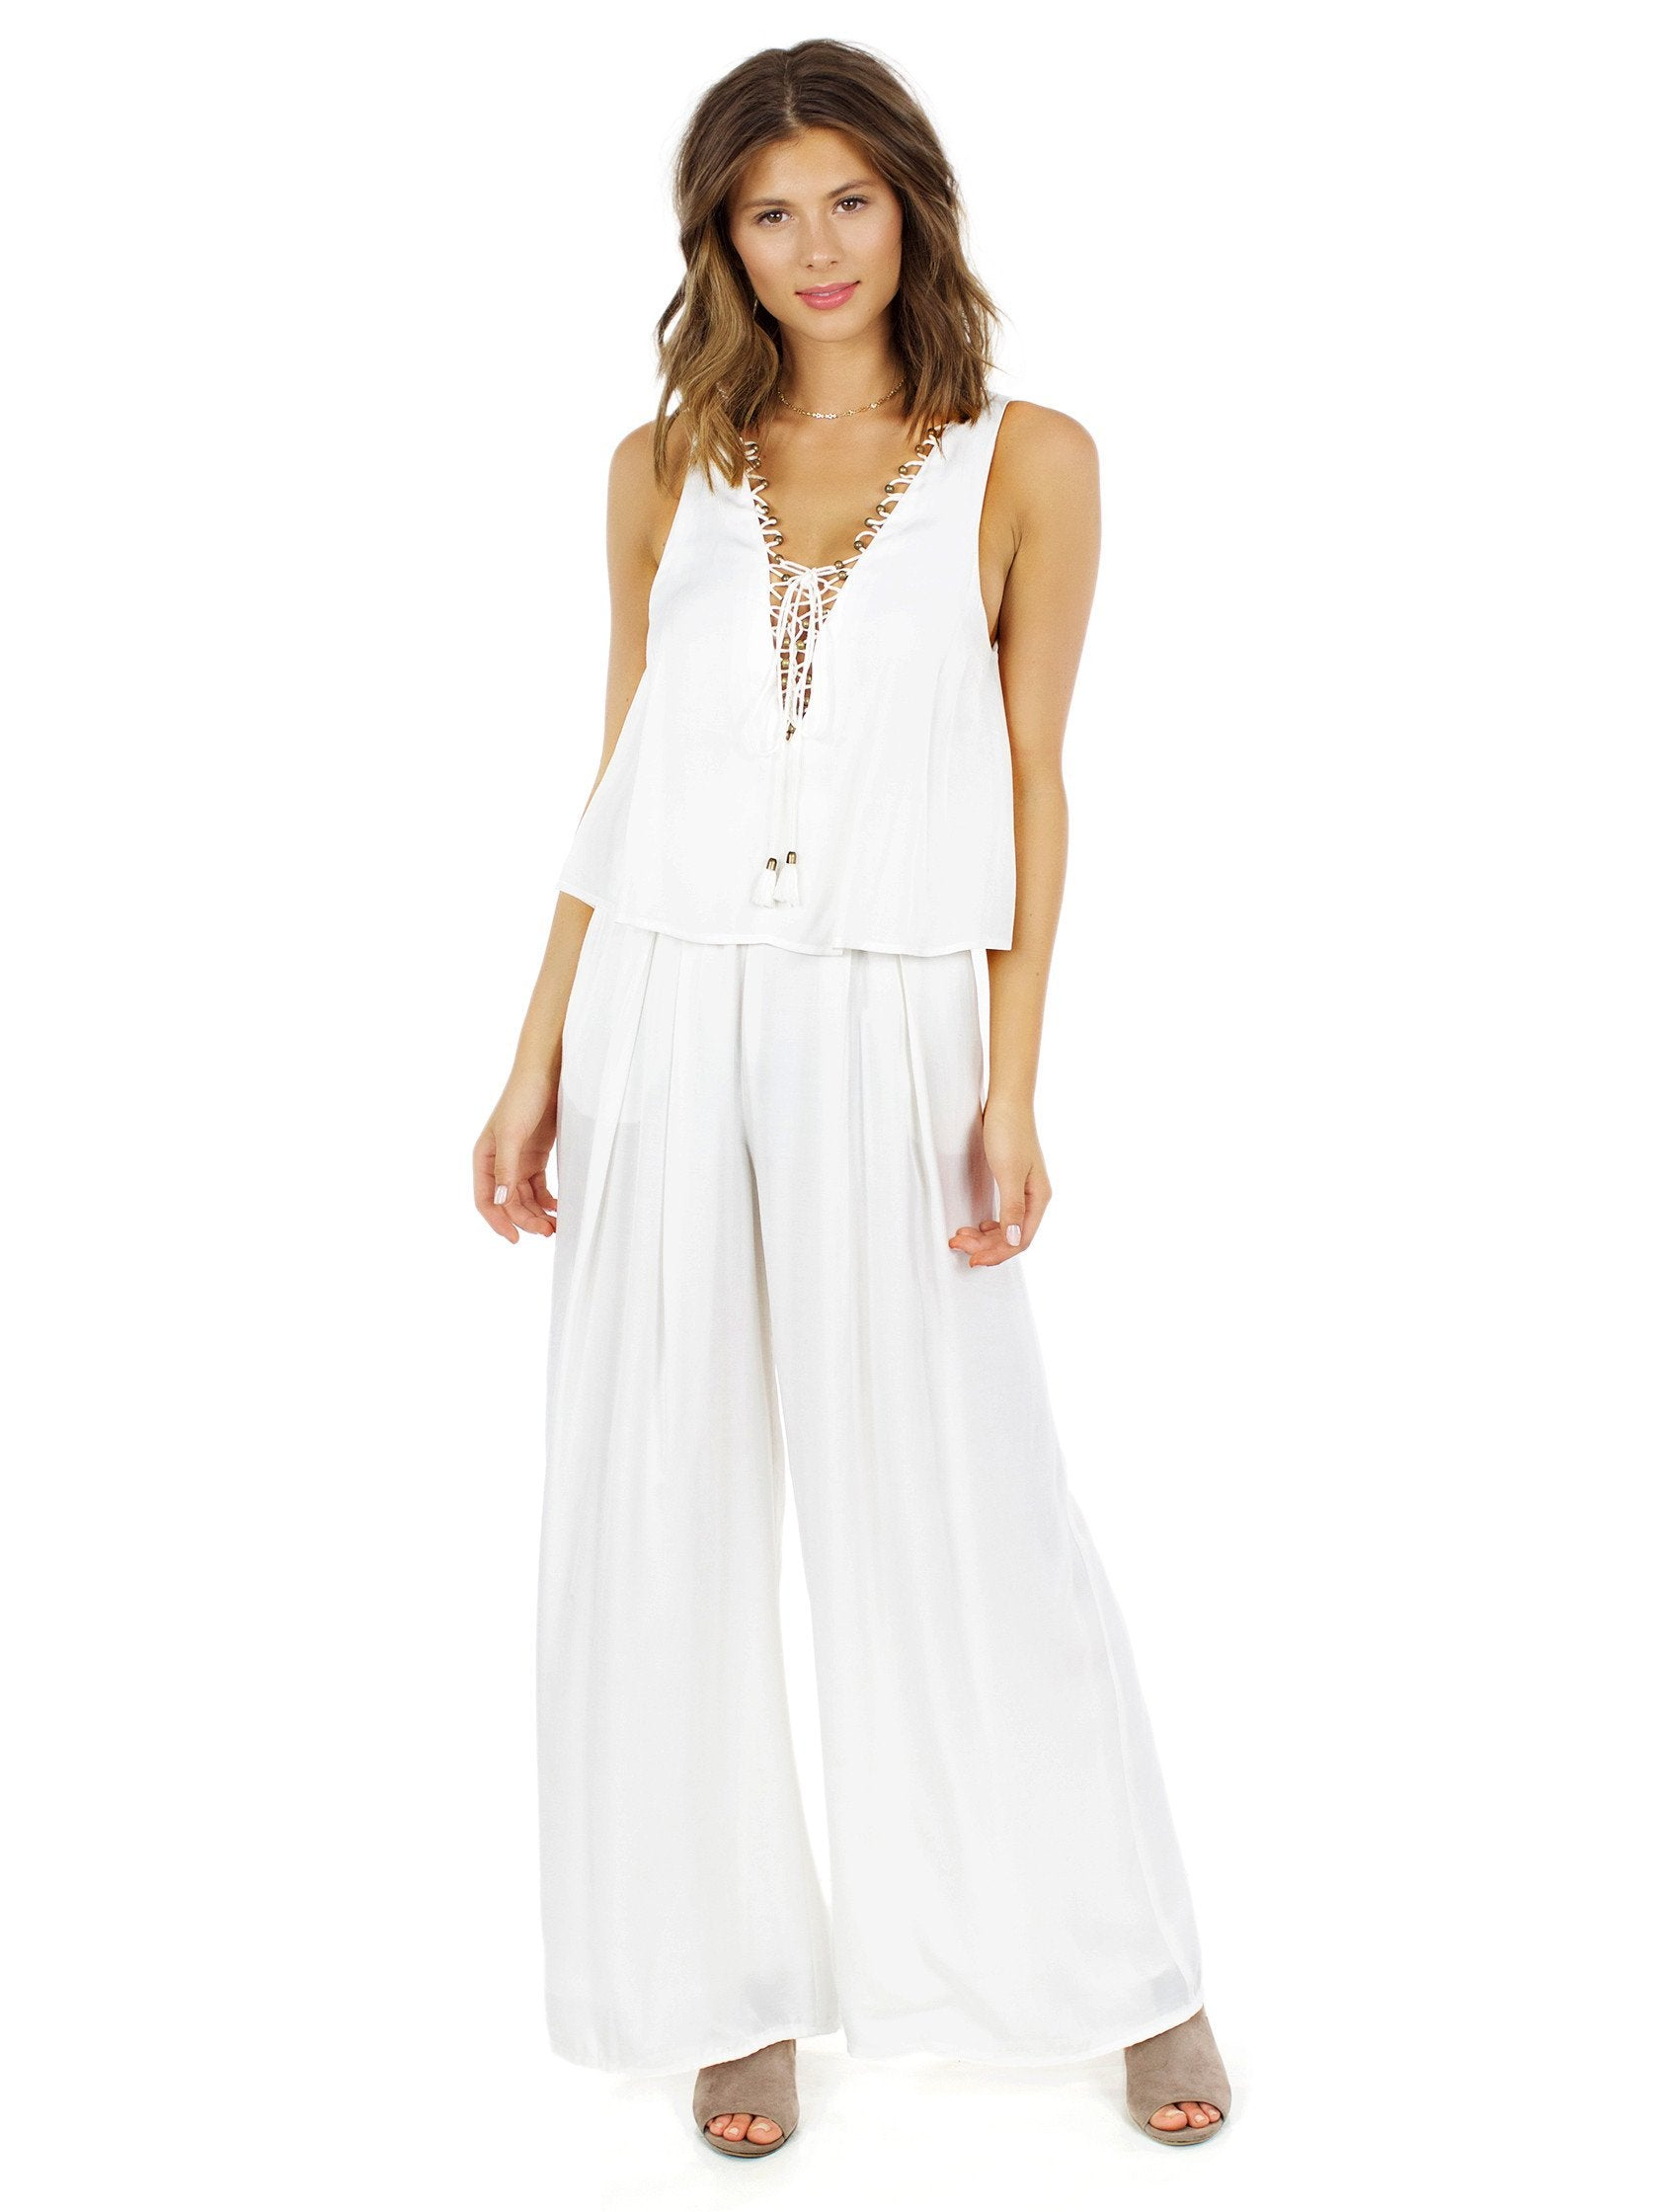 Girl outfit in a jumpsuit rental from The Jetset Diaries called Souks Jumpsuit